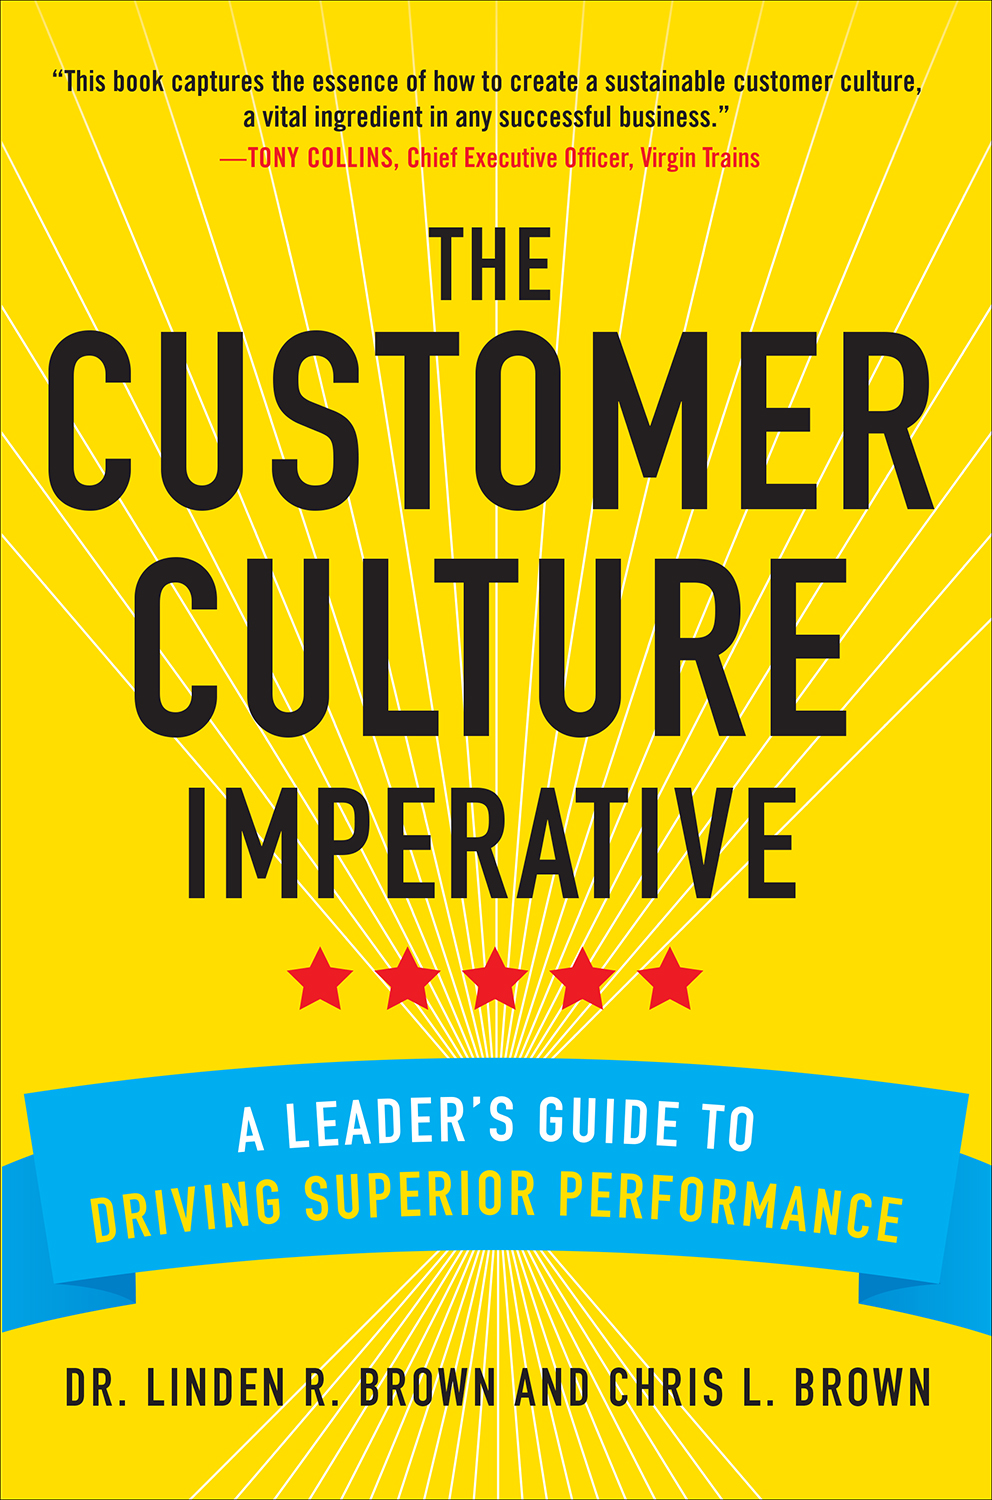 Download Ebook The Customer Culture Imperative: A Leader's Guide to Driving Superior Performance by Linden Brown Pdf